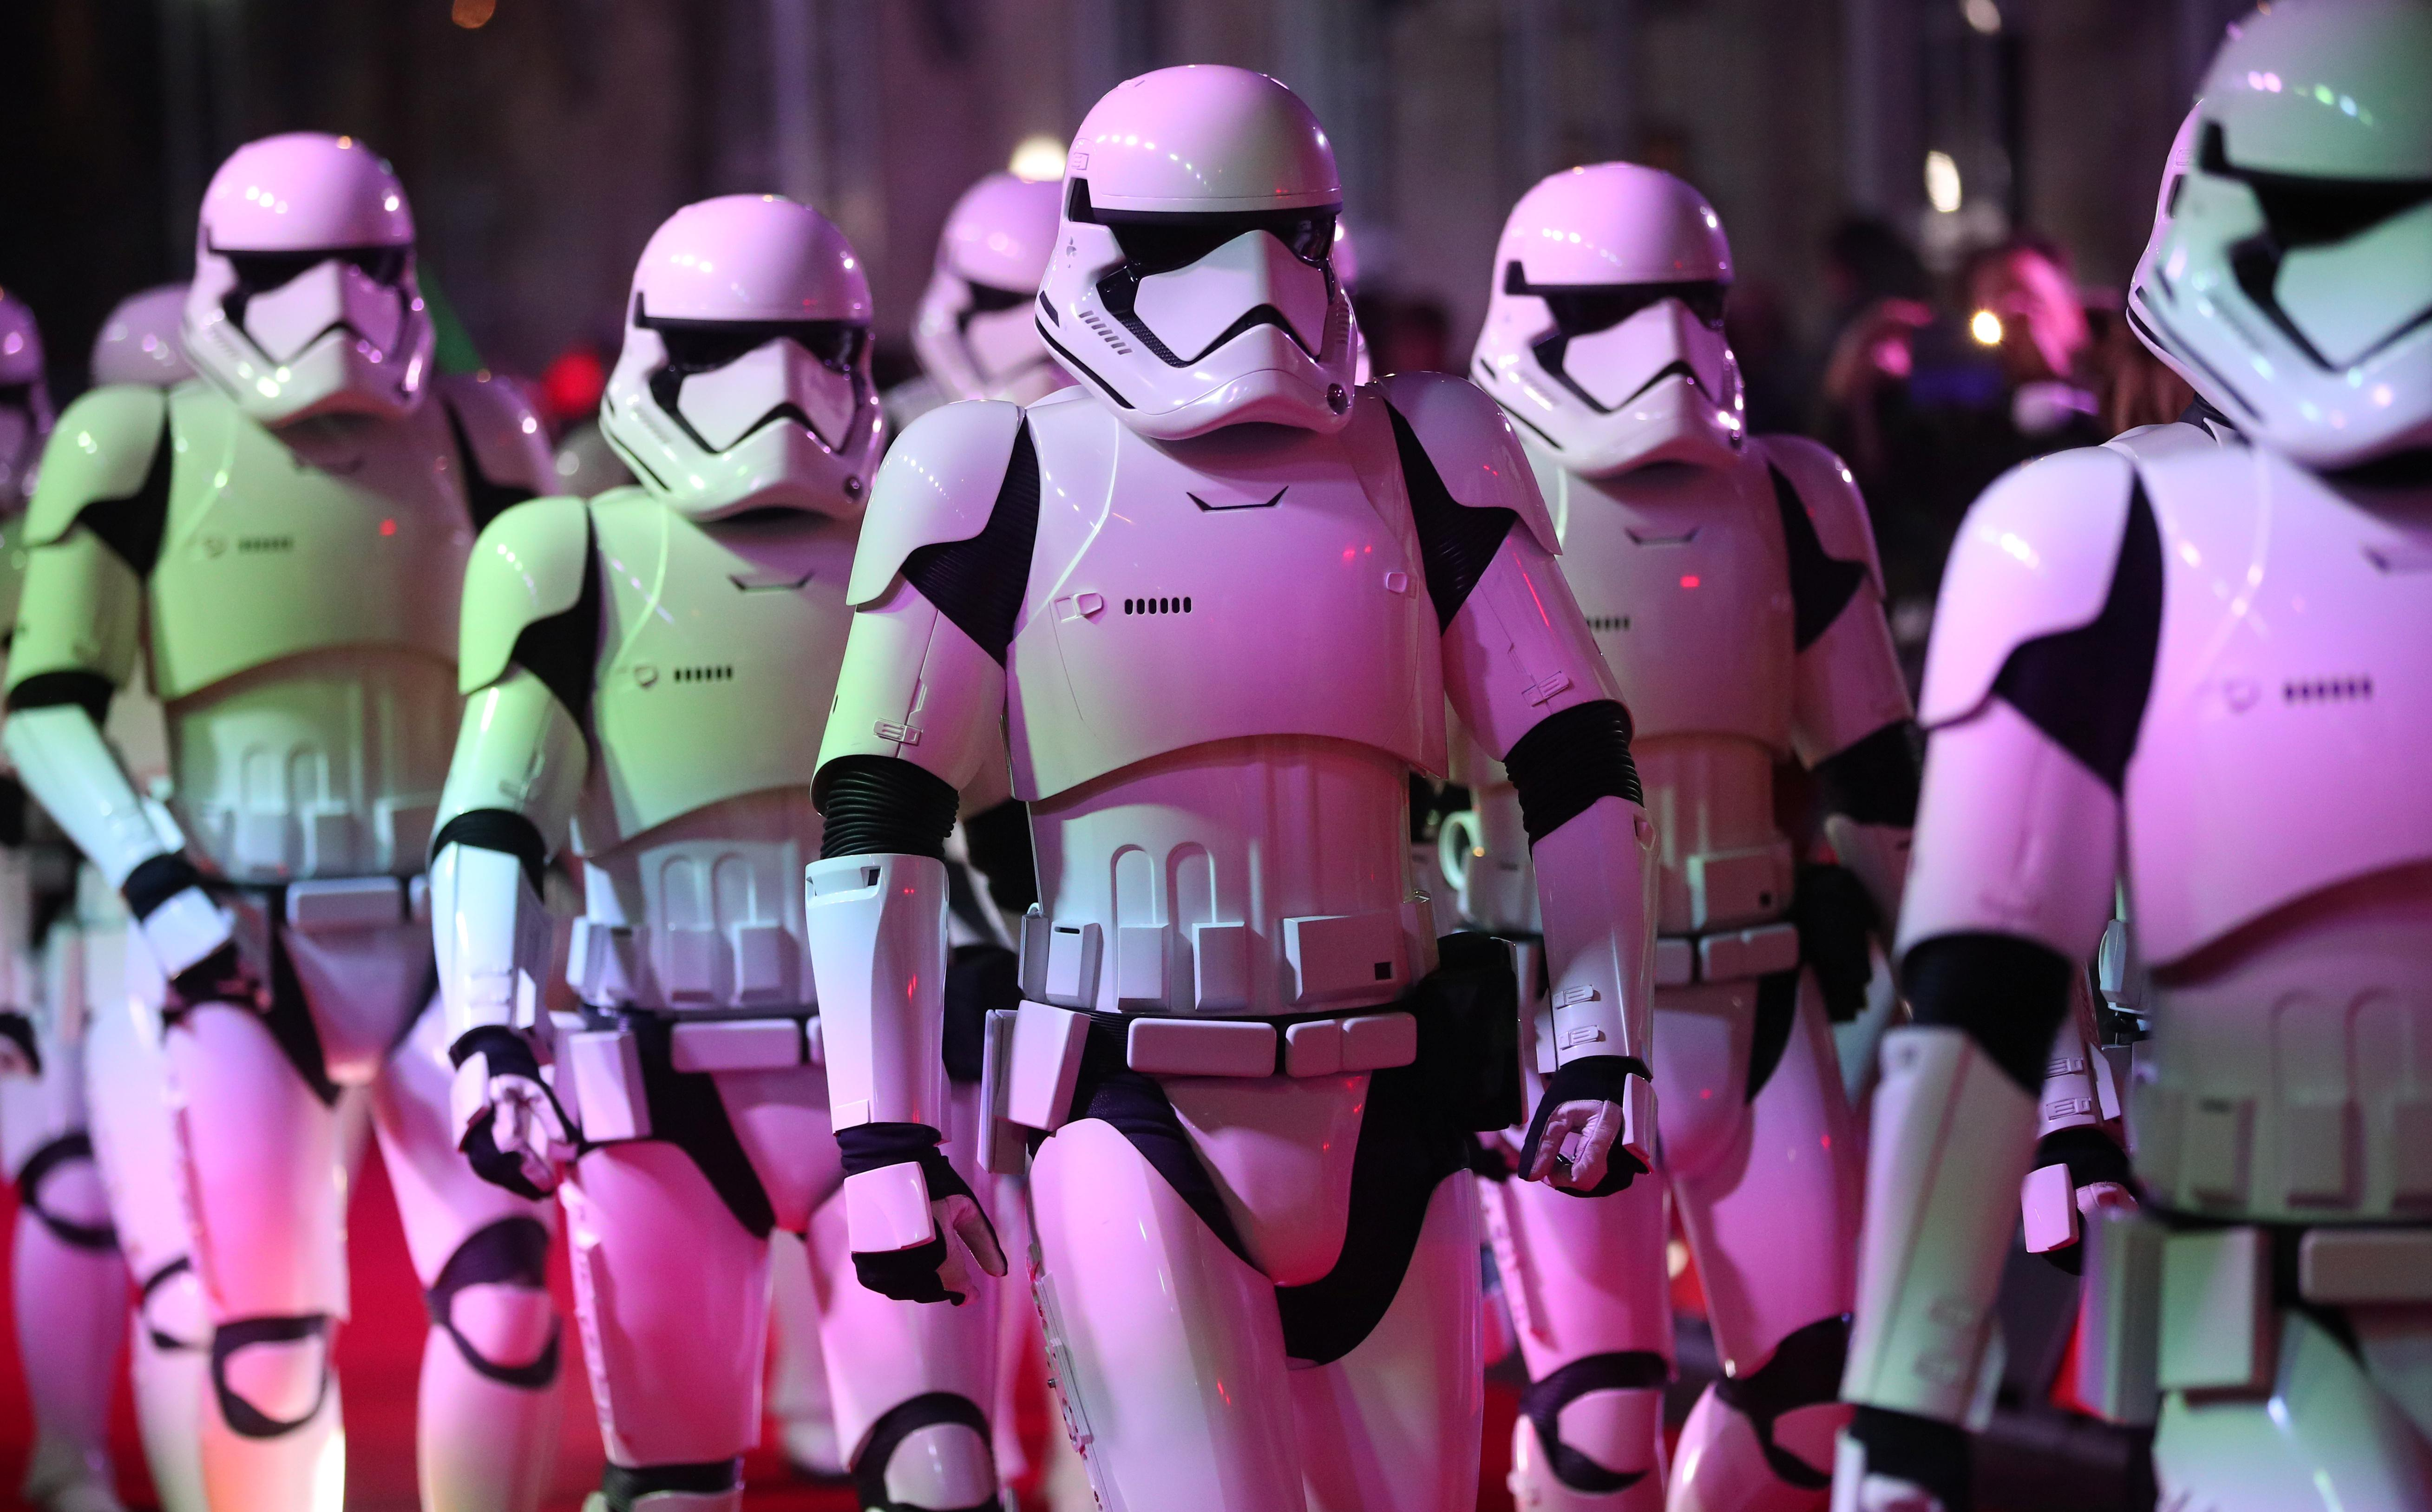 Actors dressed as storm troopers arrive for the European Premiere of 'Star Wars: The Last Jedi', at the Royal Albert Hall in central London, Britain December 12, 2017. Hannah McKay